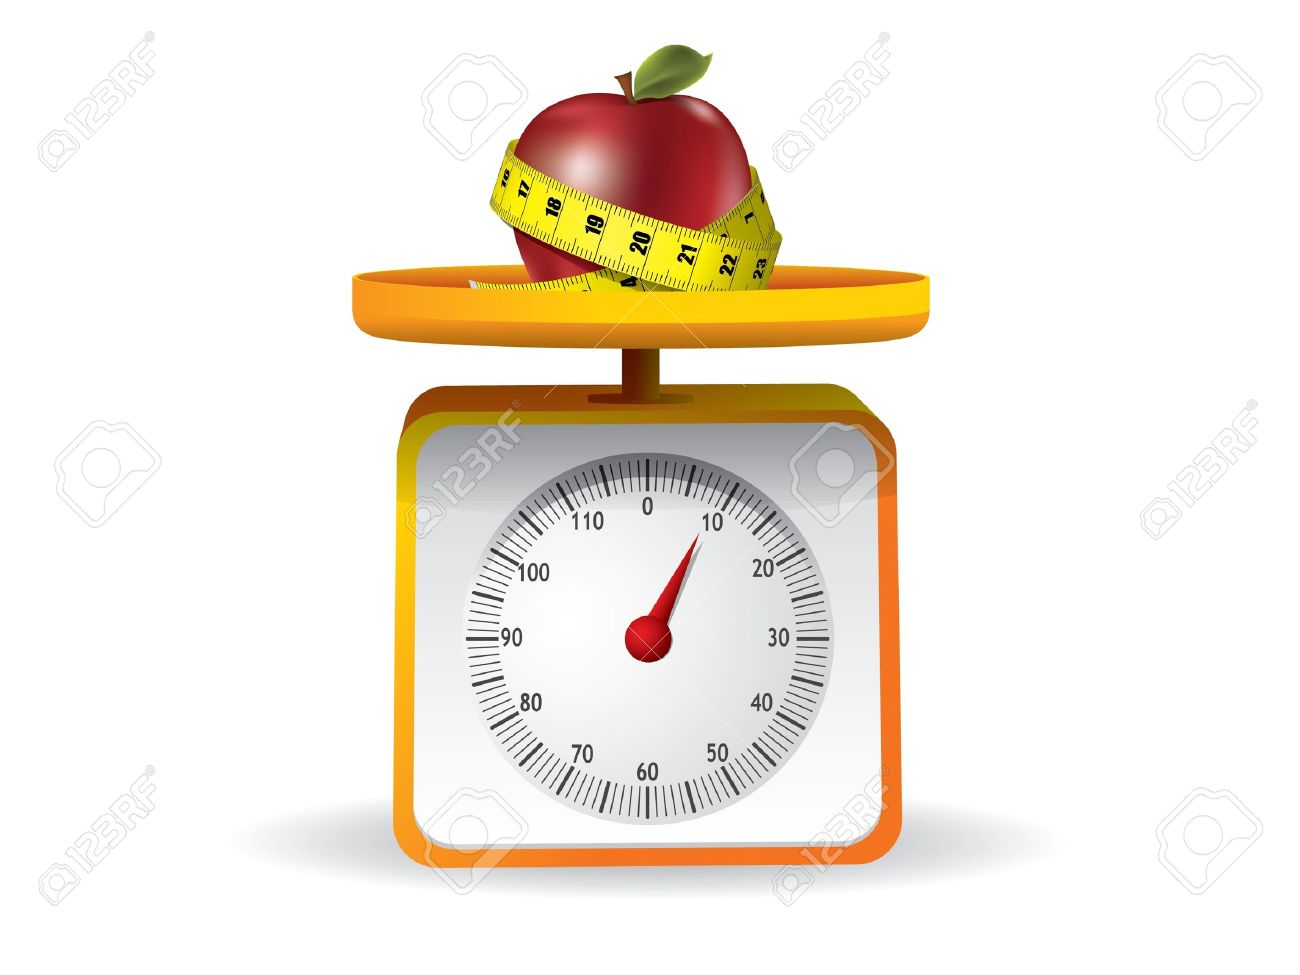 apple on kitchen food scale on white background Stock Vector - 9543578